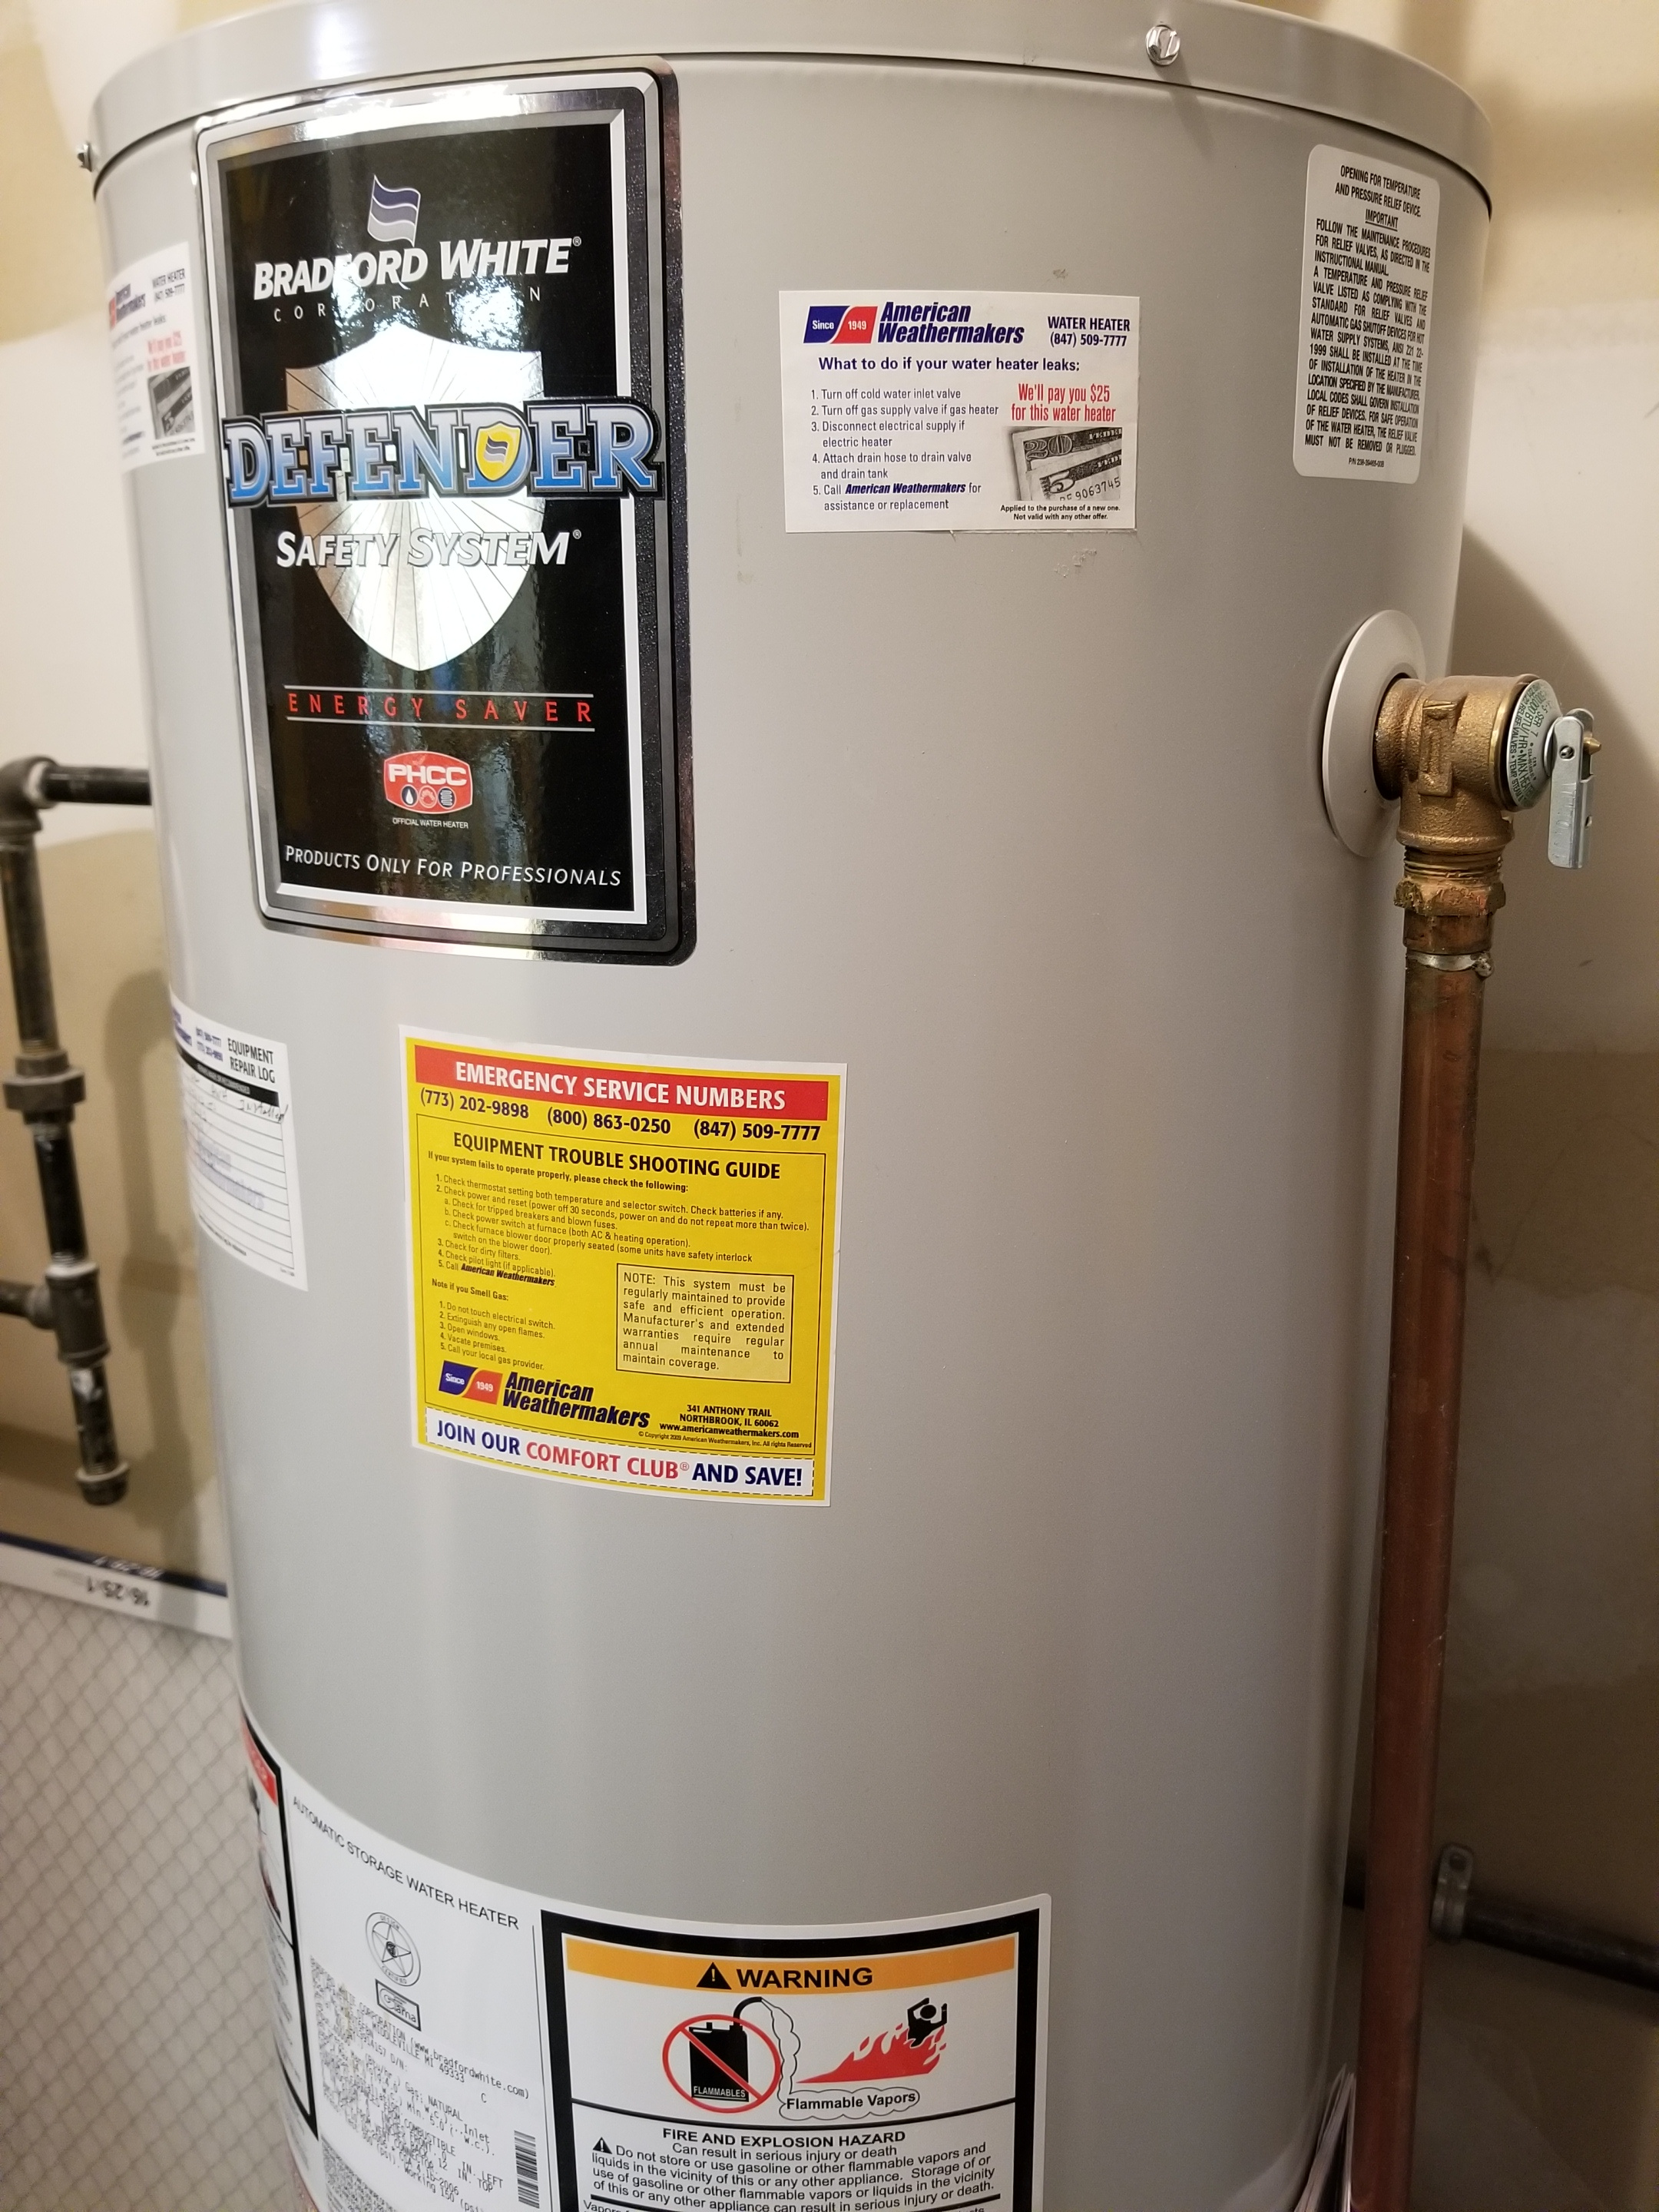 Performed annual maintenance on the Rheem furnace and BRADFORD WHITE  water heater. Made adjustments to improve the overall efficiency and life expectancy of the equipment.